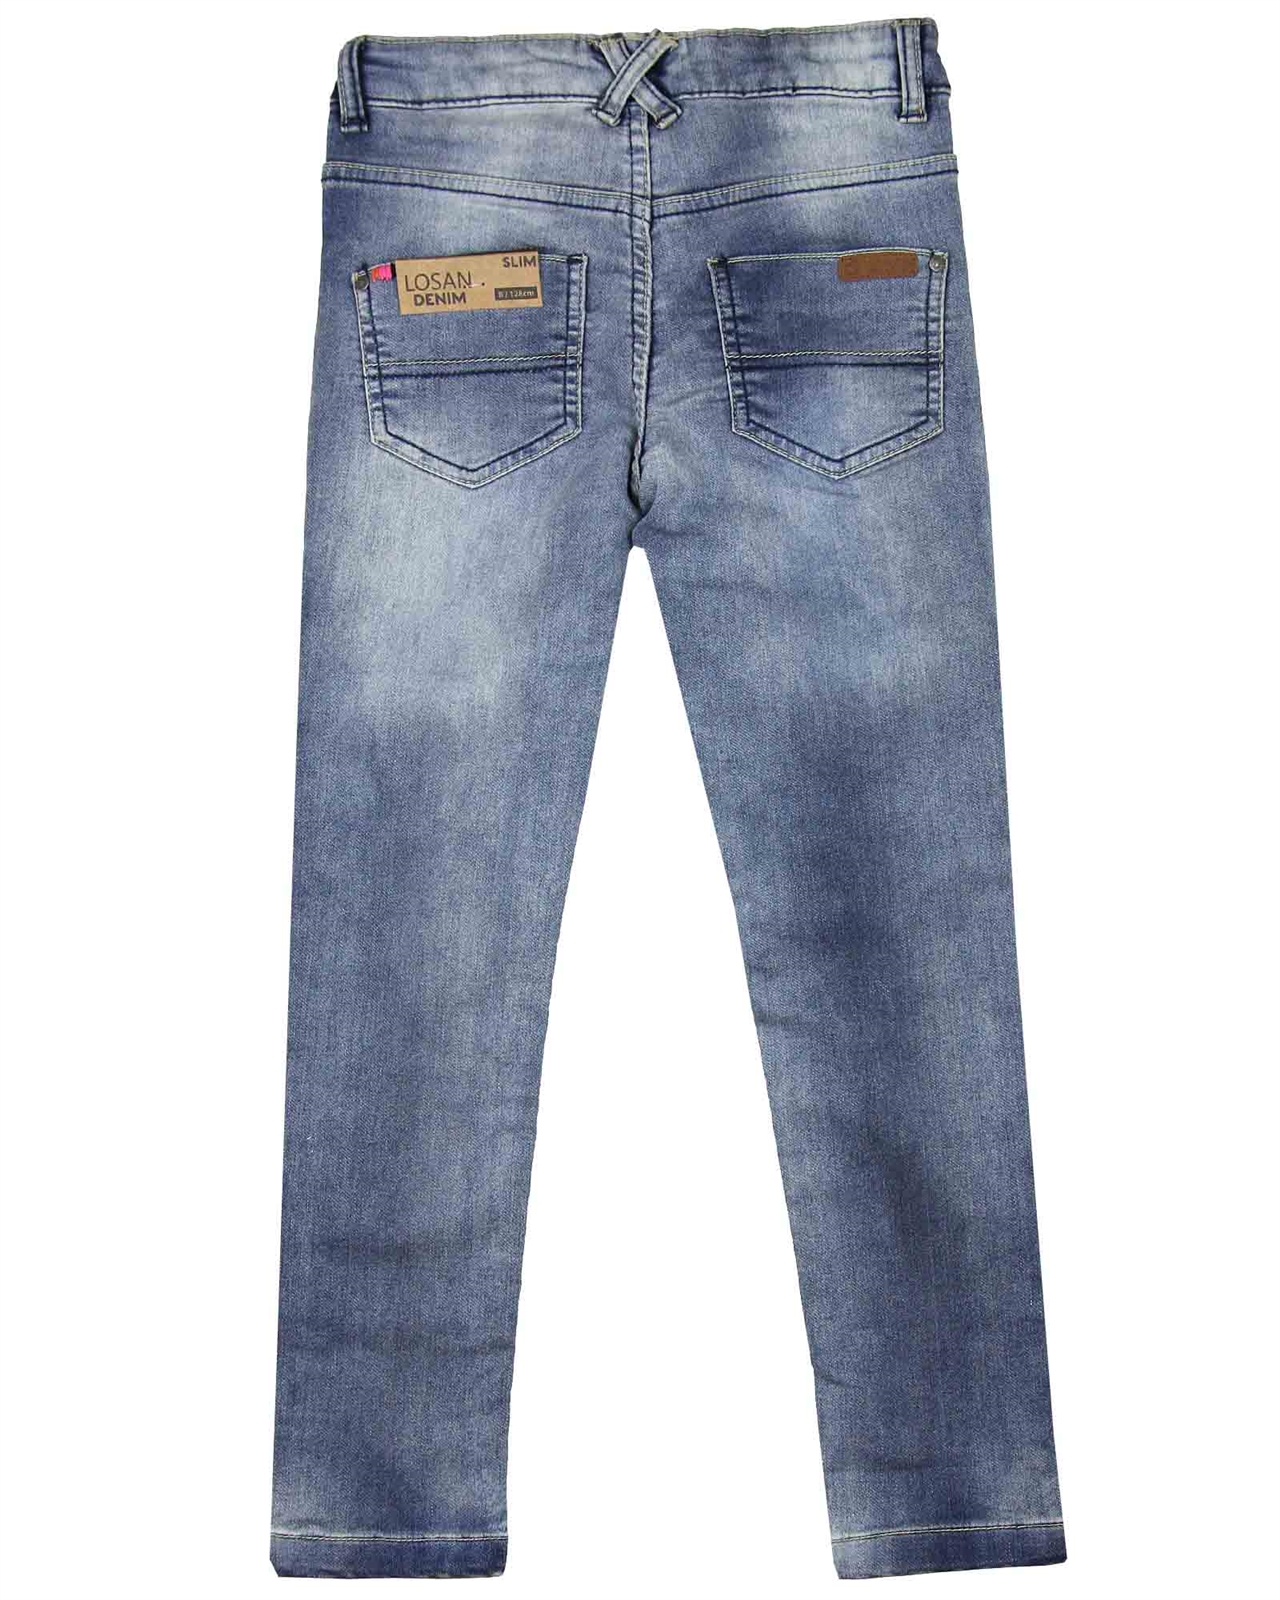 Losan Junior Girls Jogg Jeans with Badges Sizes 8-16